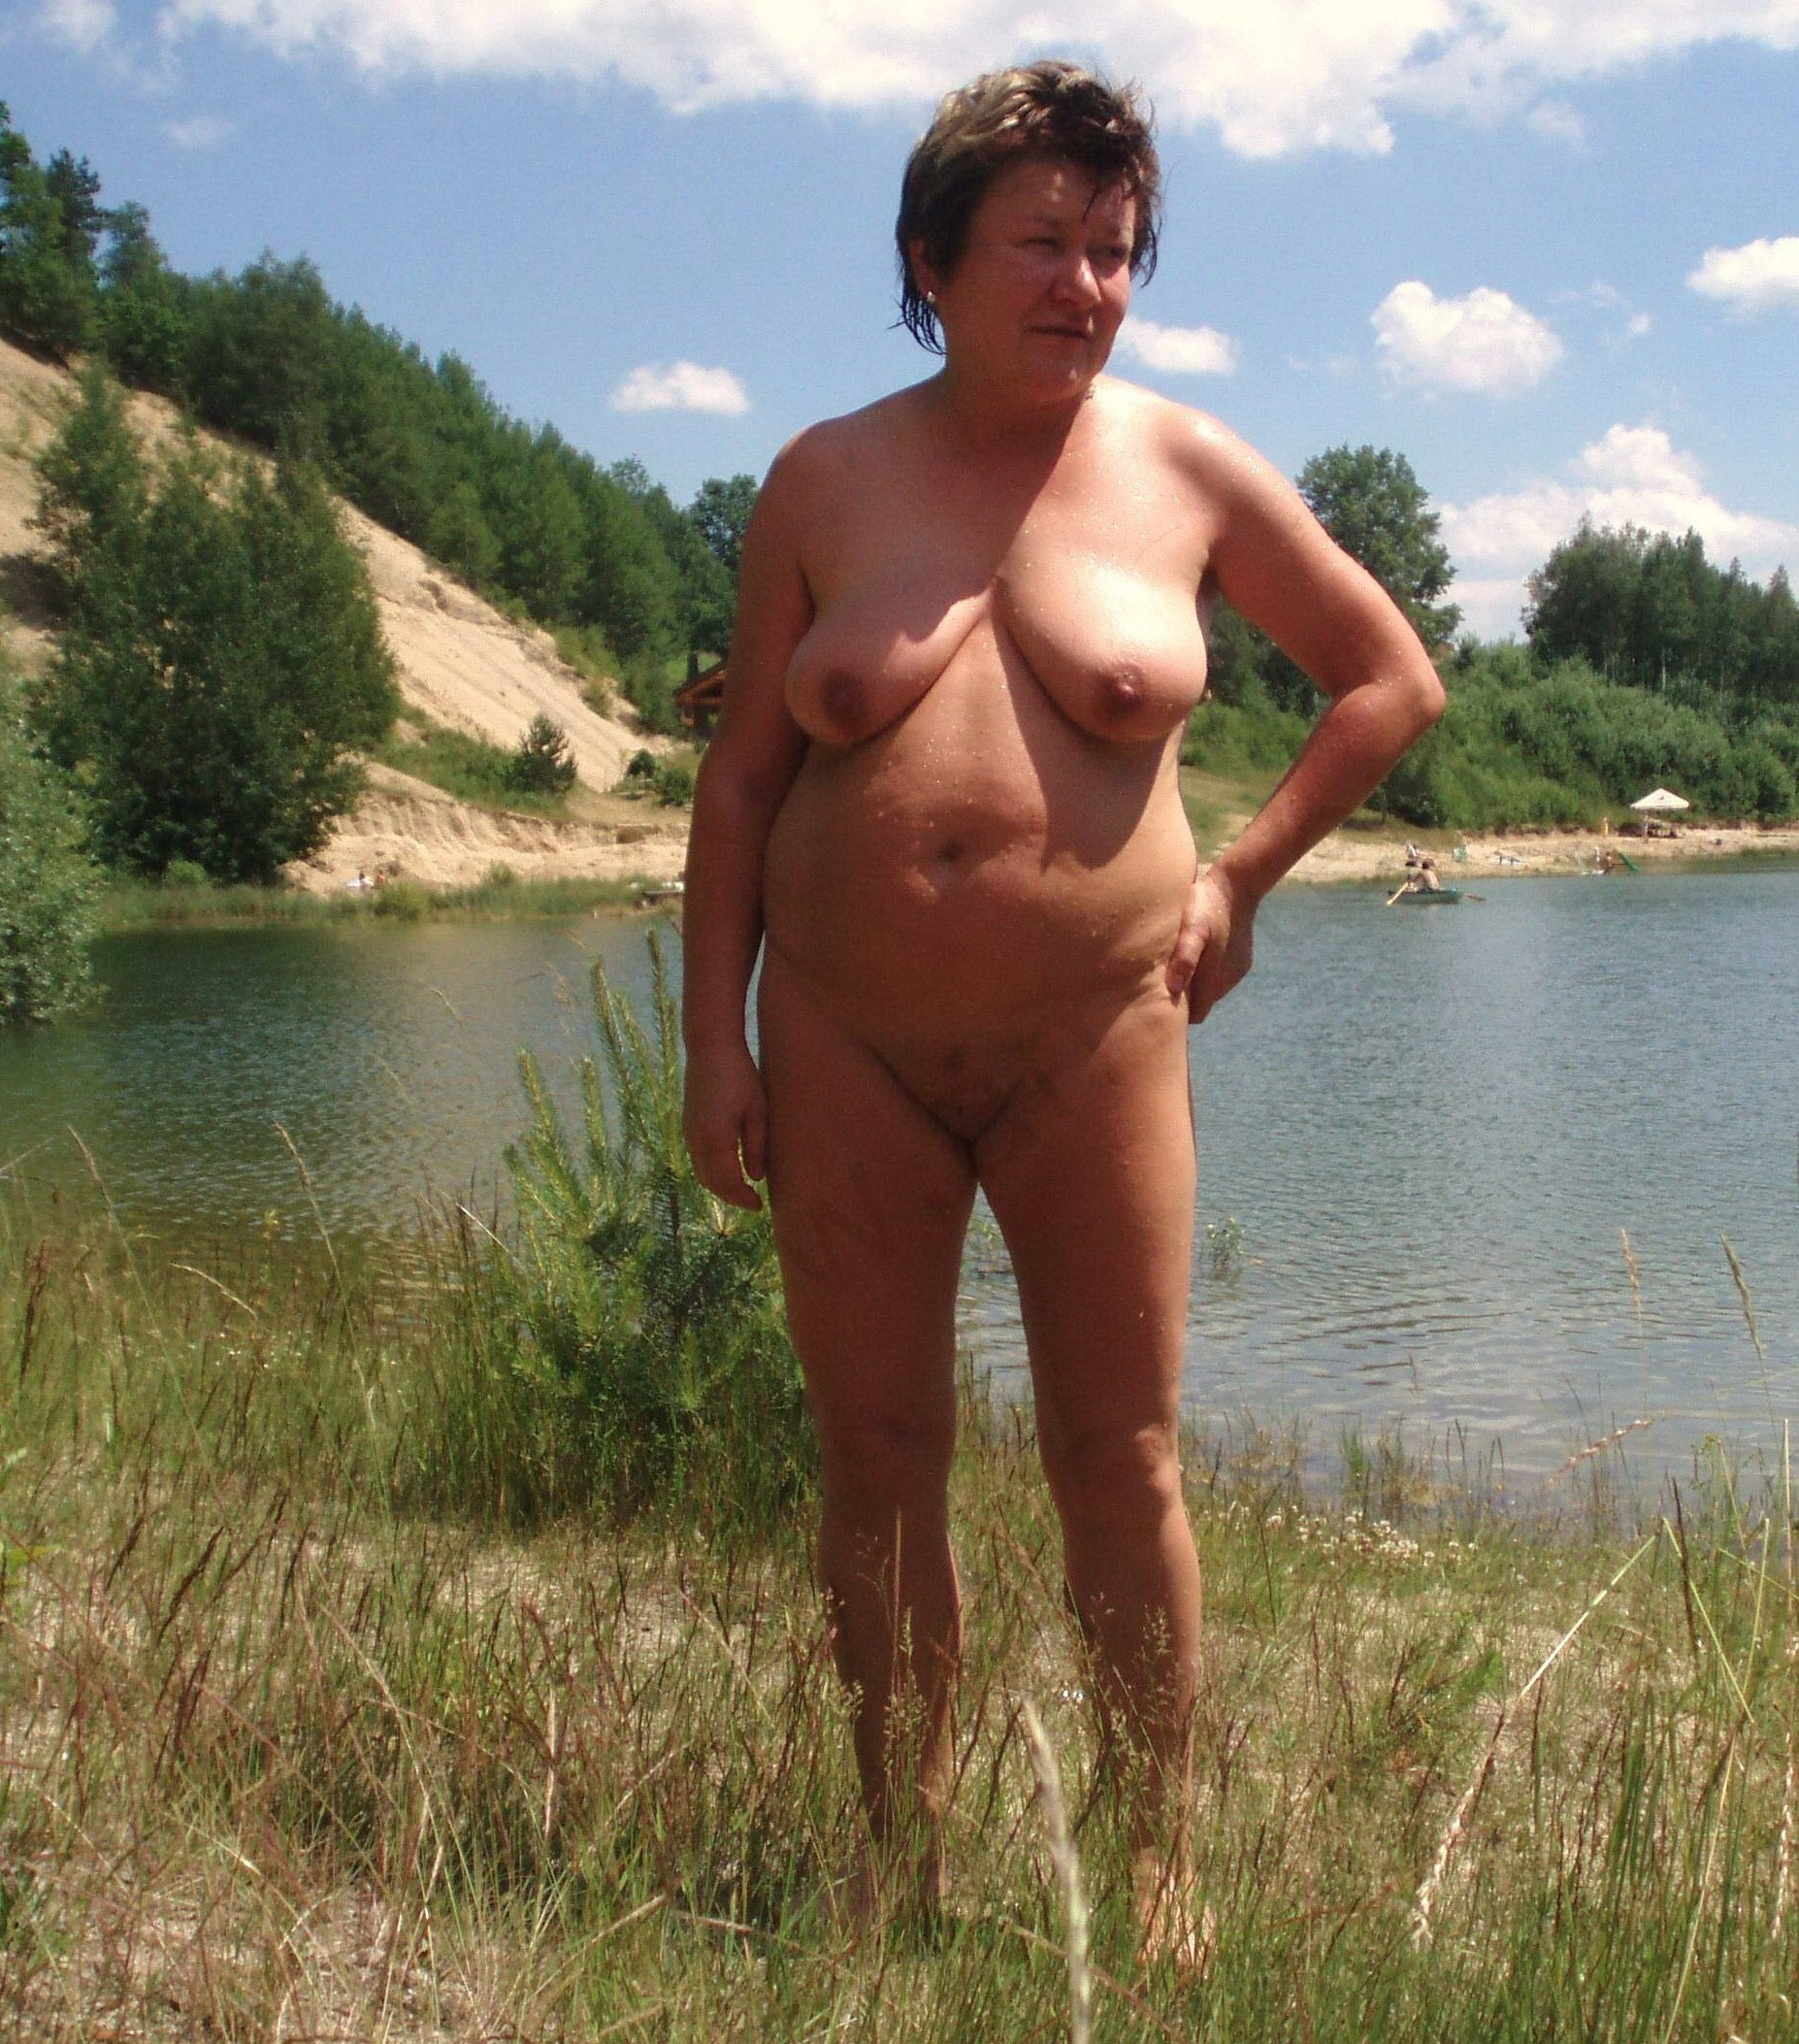 Granny nudist tumblr